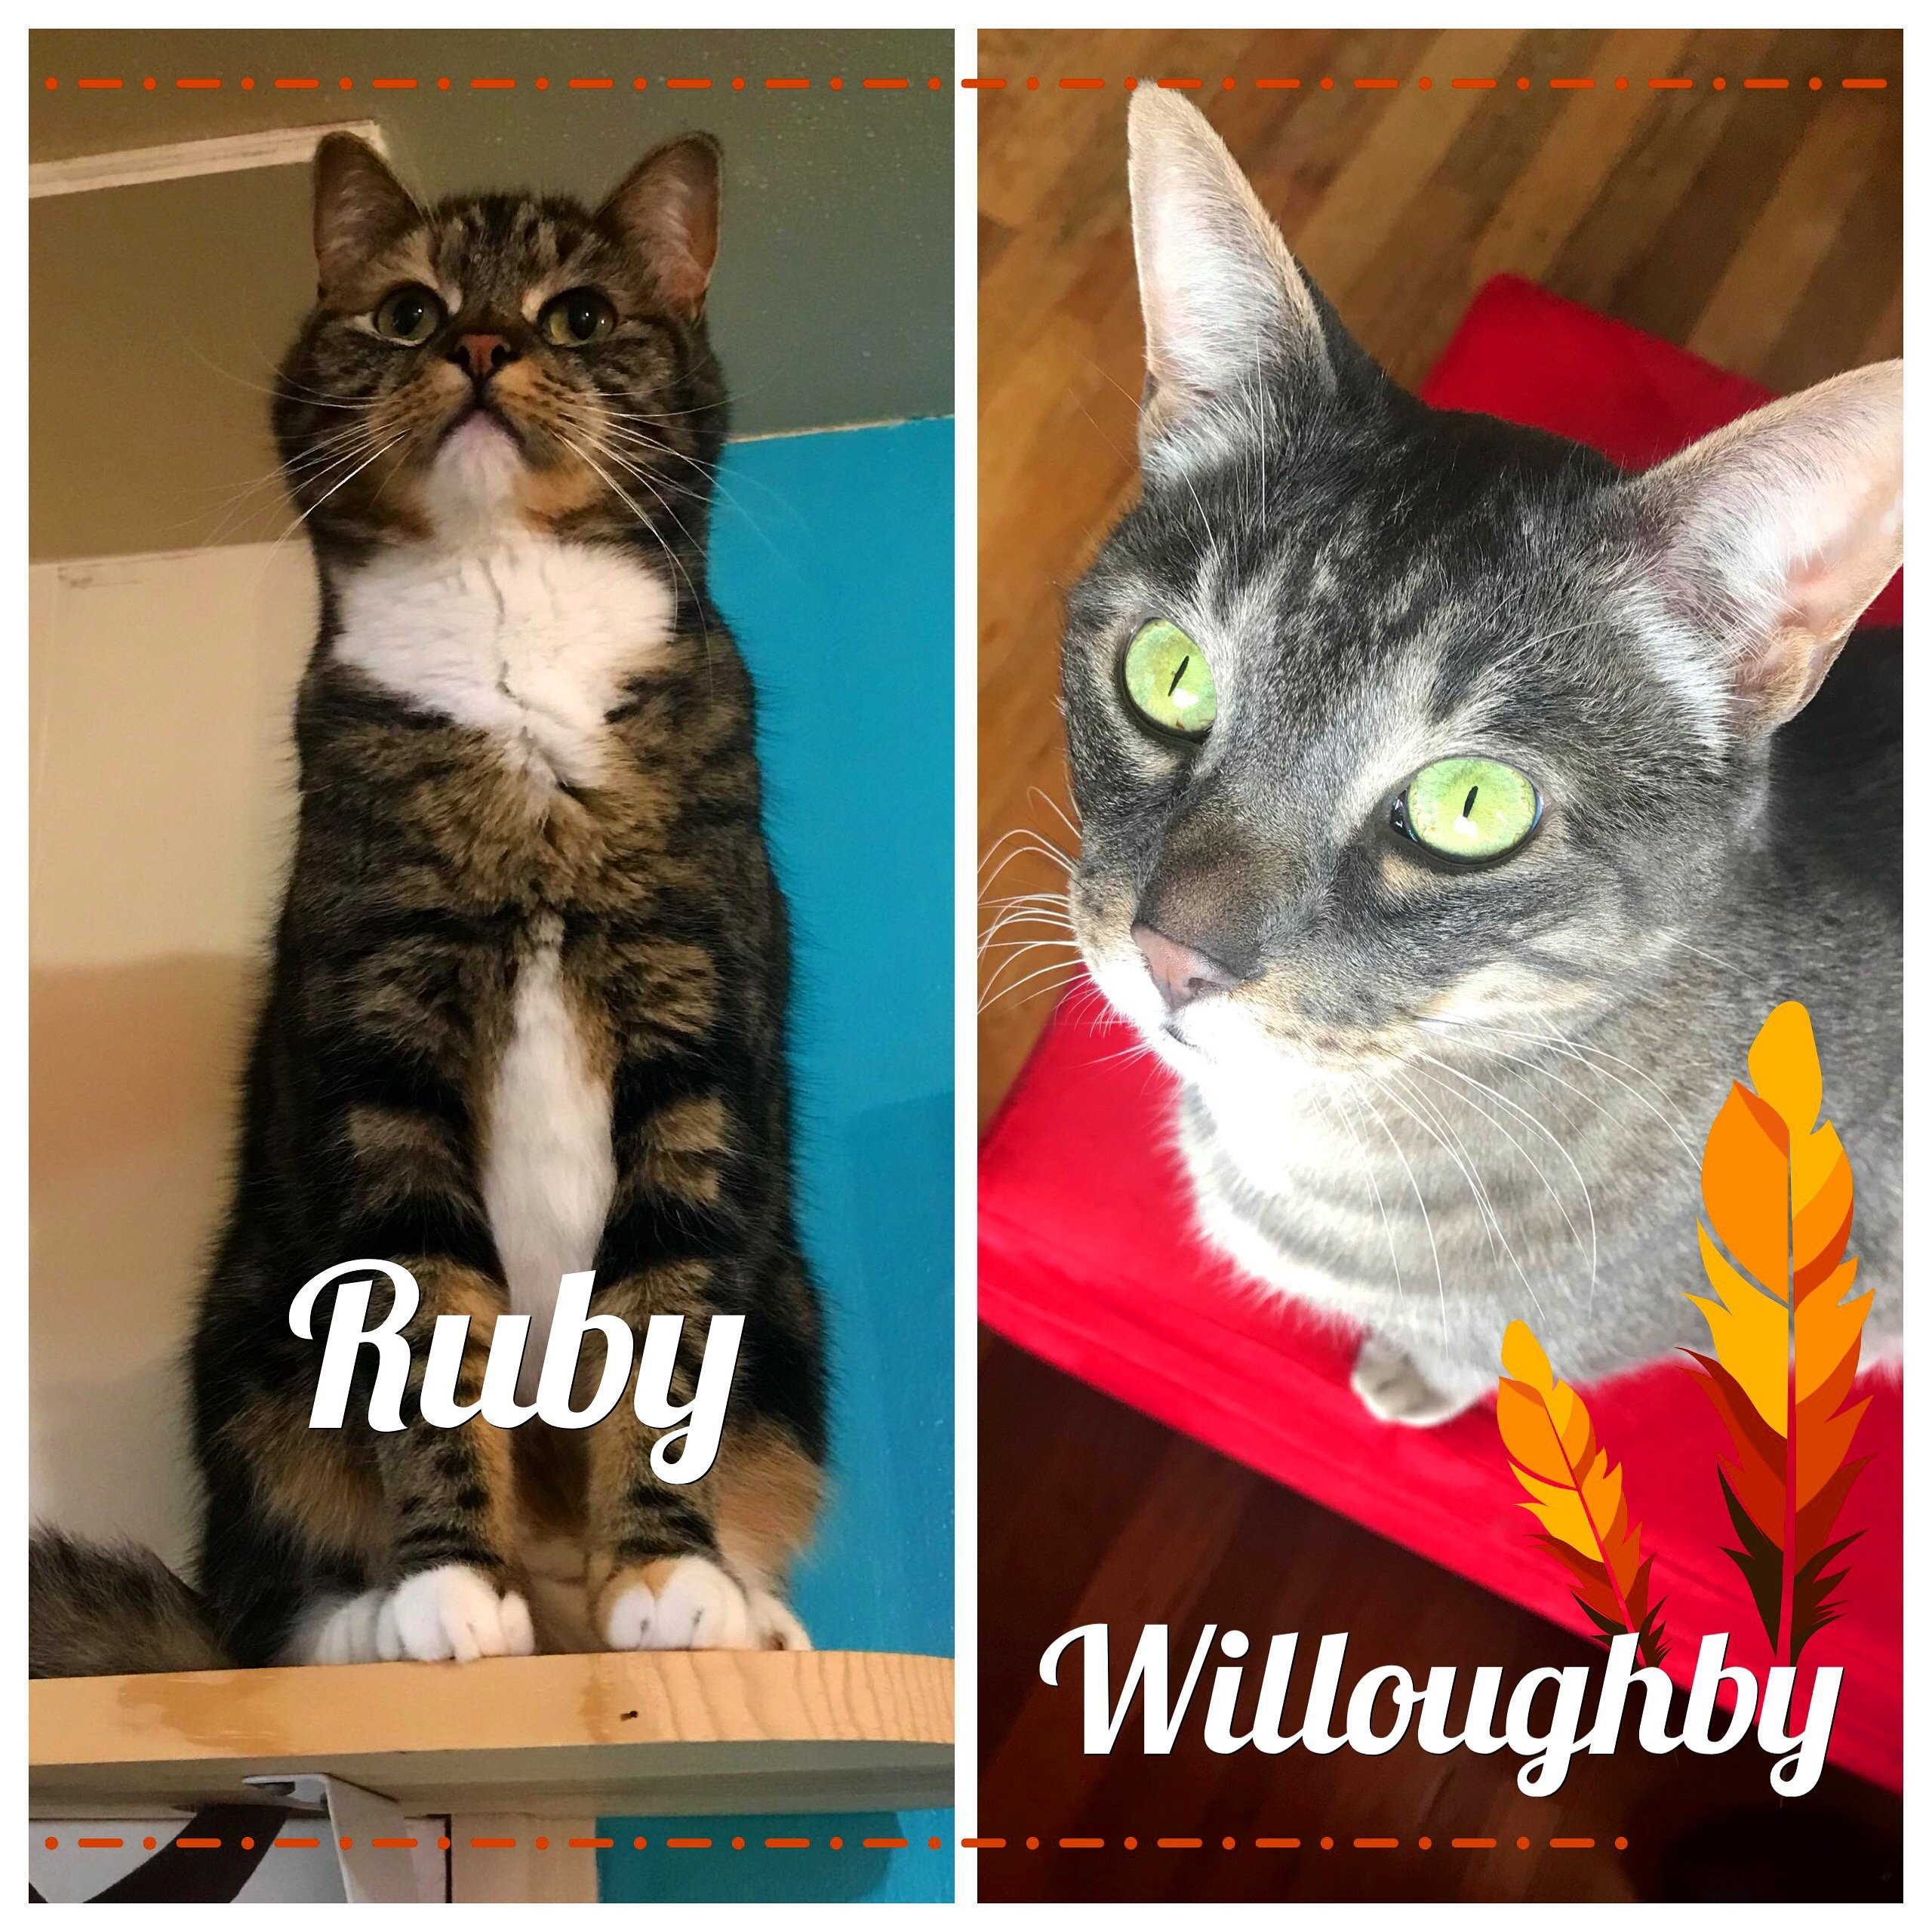 Ruby-Willoughby